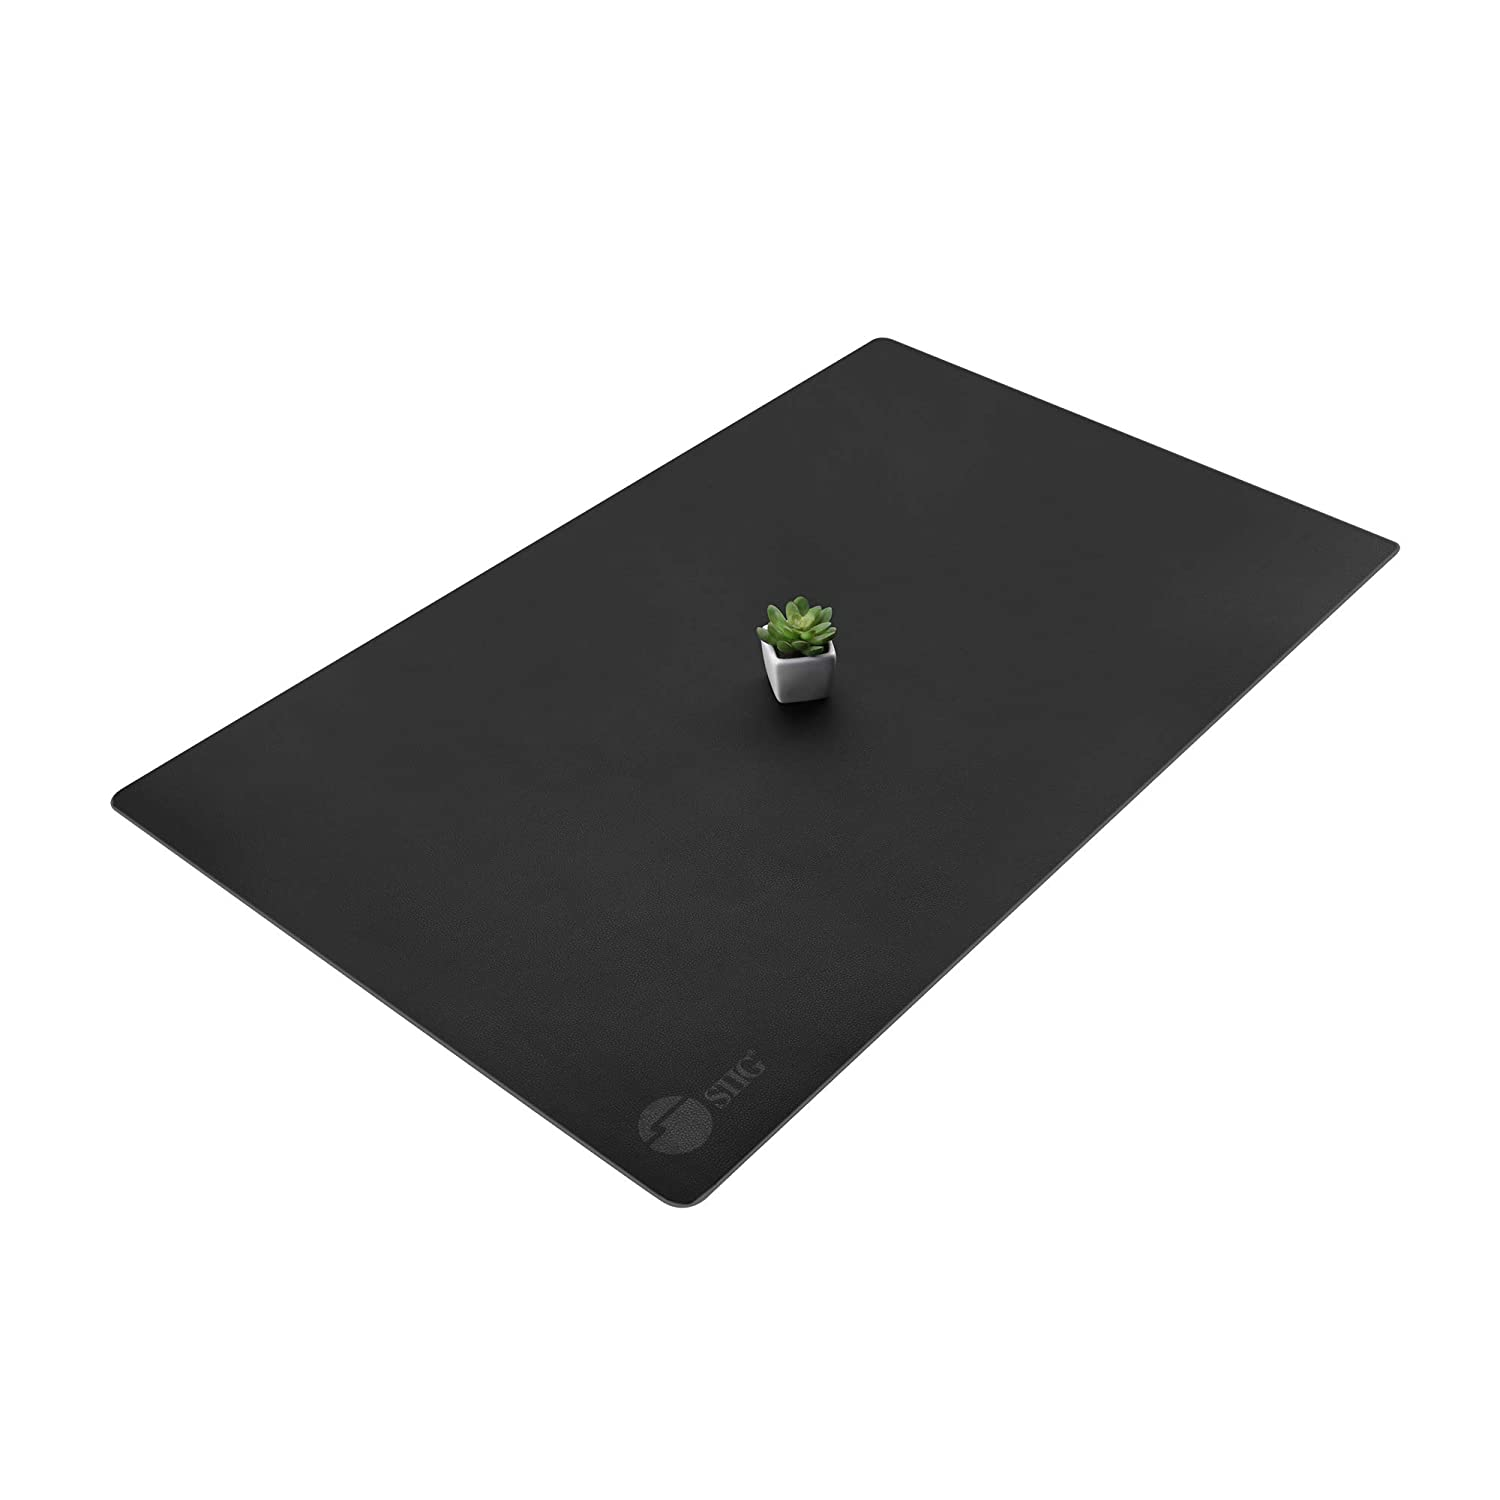 """SIIG Artificial Leather Smooth Desk Mat Blotter Protecter - 36"""" x 22"""" Desk Pad with Non-Slip Water Repellent Protection for Office and Home - Black"""